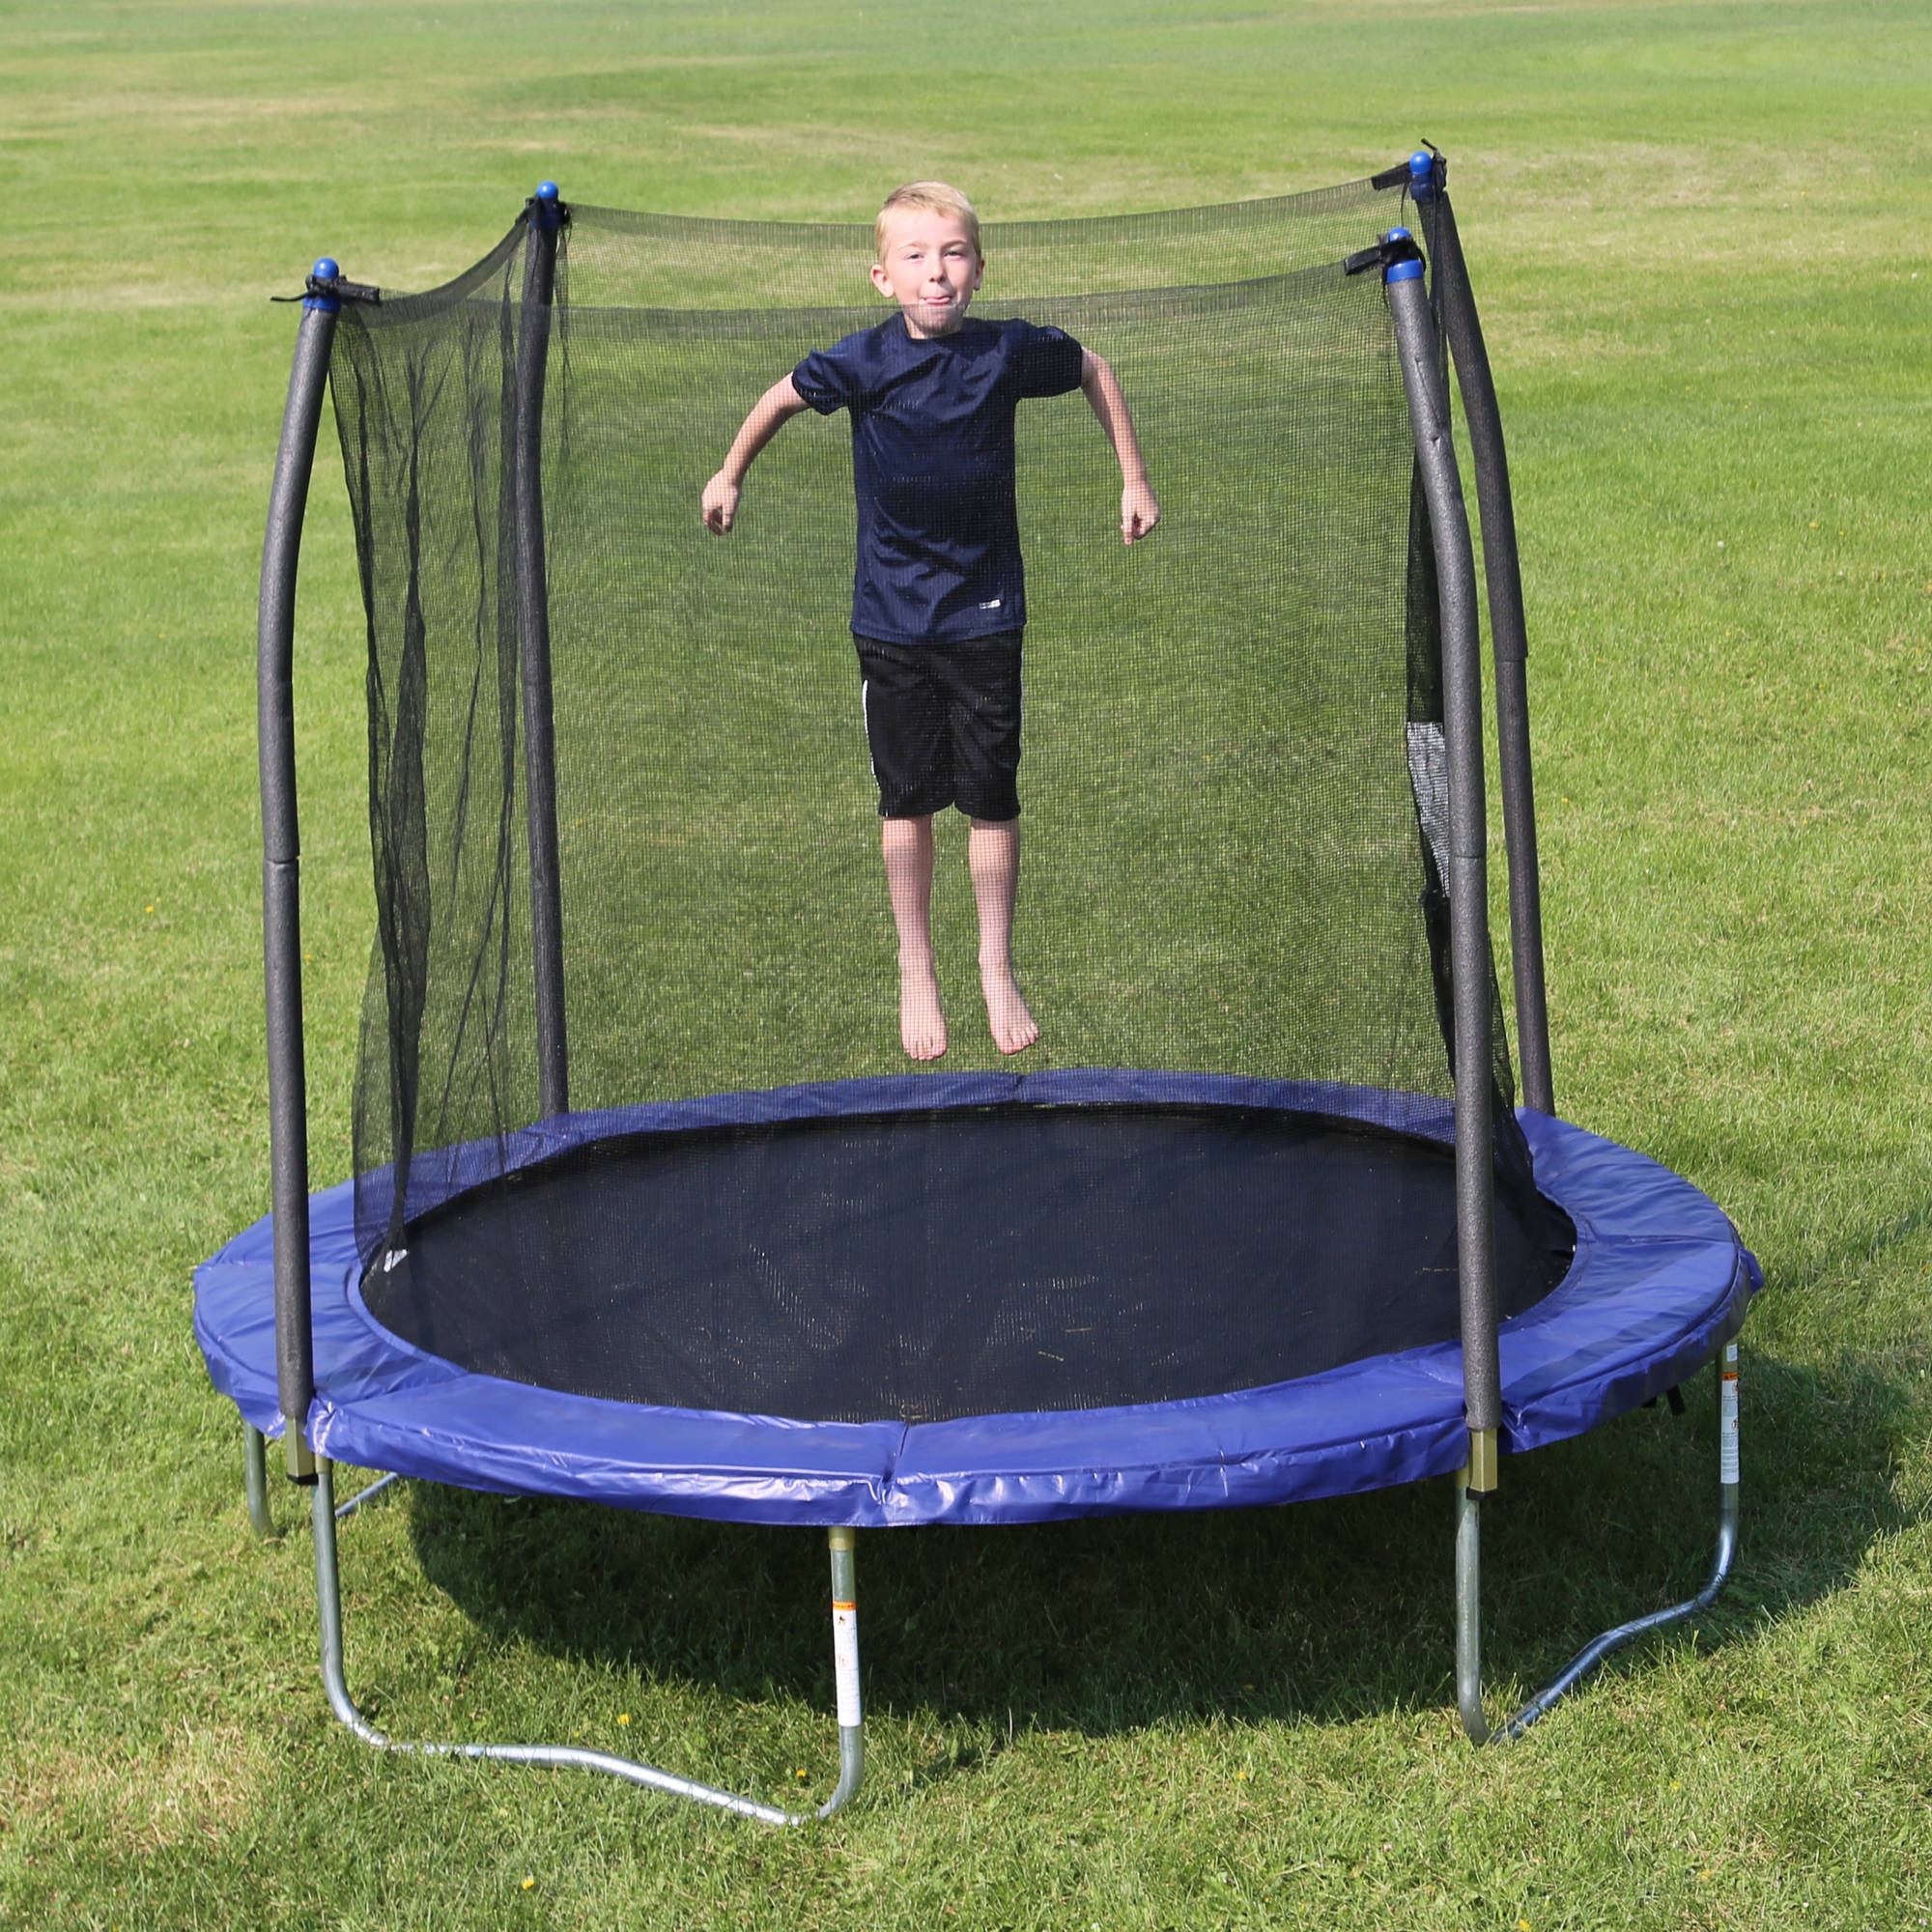 Skywalker Trampolines 8' Round Trampoline with Safety Enclosure, Blue